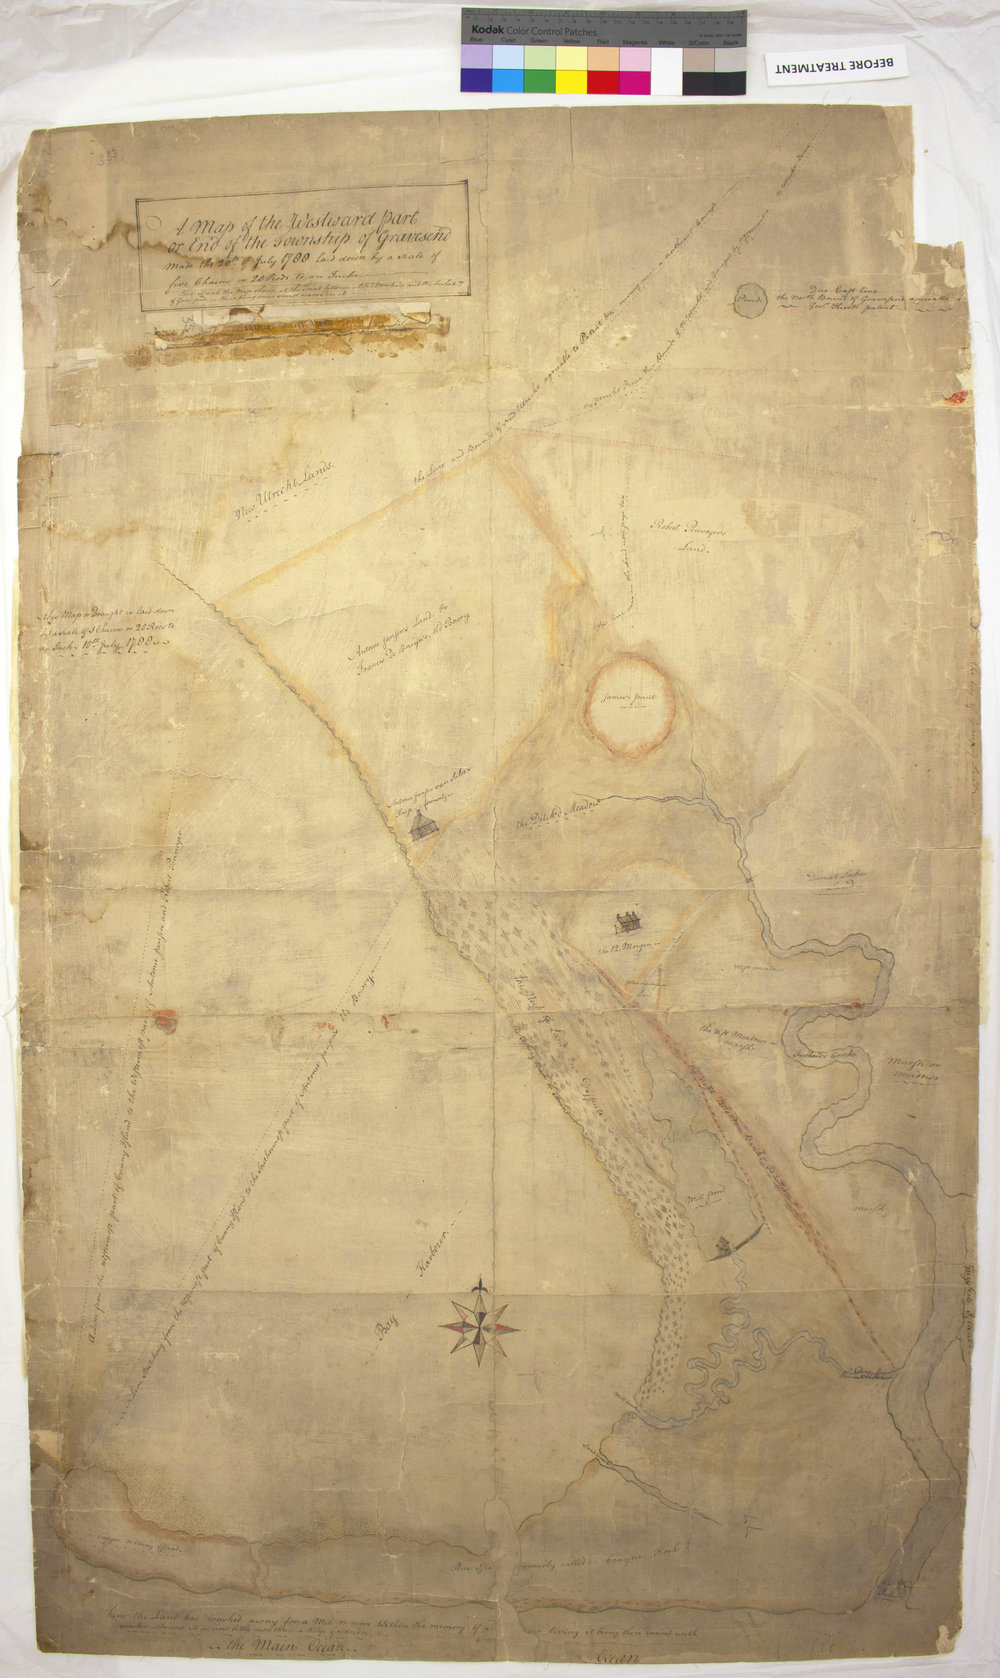 1788 map of Gravesend, Brooklyn, before treatment, recto.